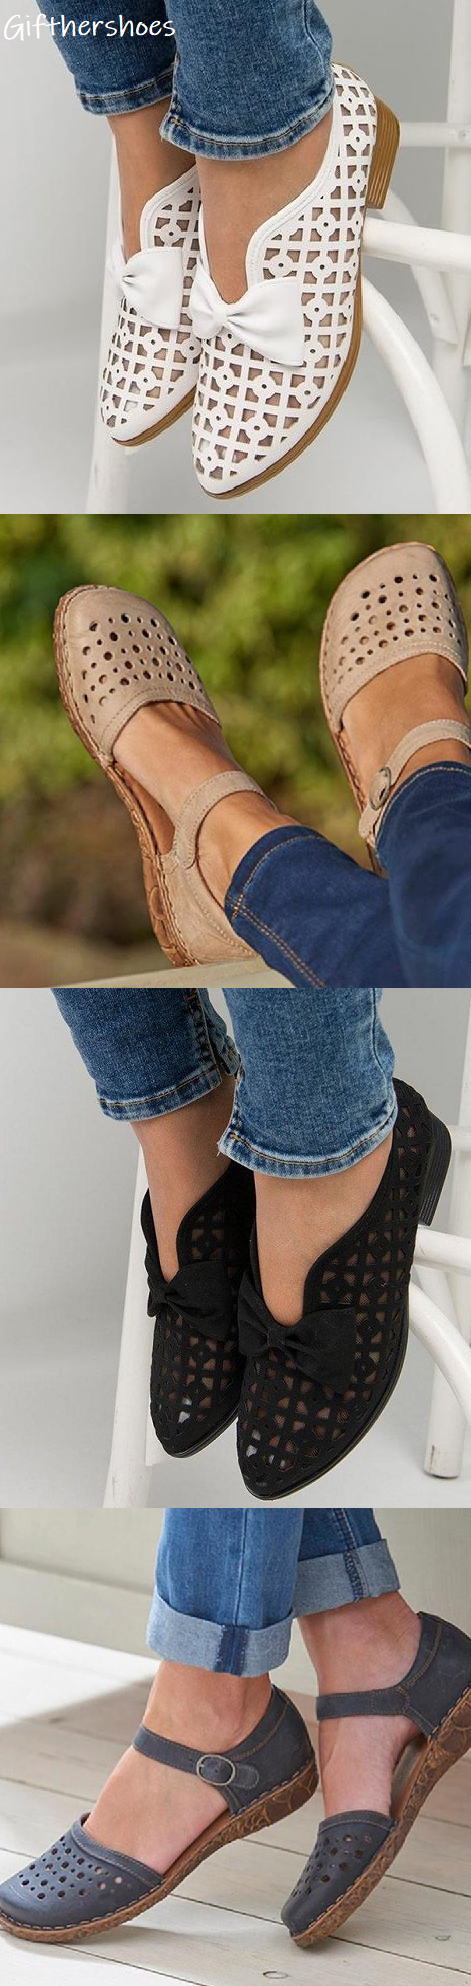 Shop Now 75 Off Hot Hollow Out Sandals Shoes Picks For Your Daily Outfits Must Have Pair Buy 2 Get 8 Off Code Gift8 With Images Moda Buty Zakupy